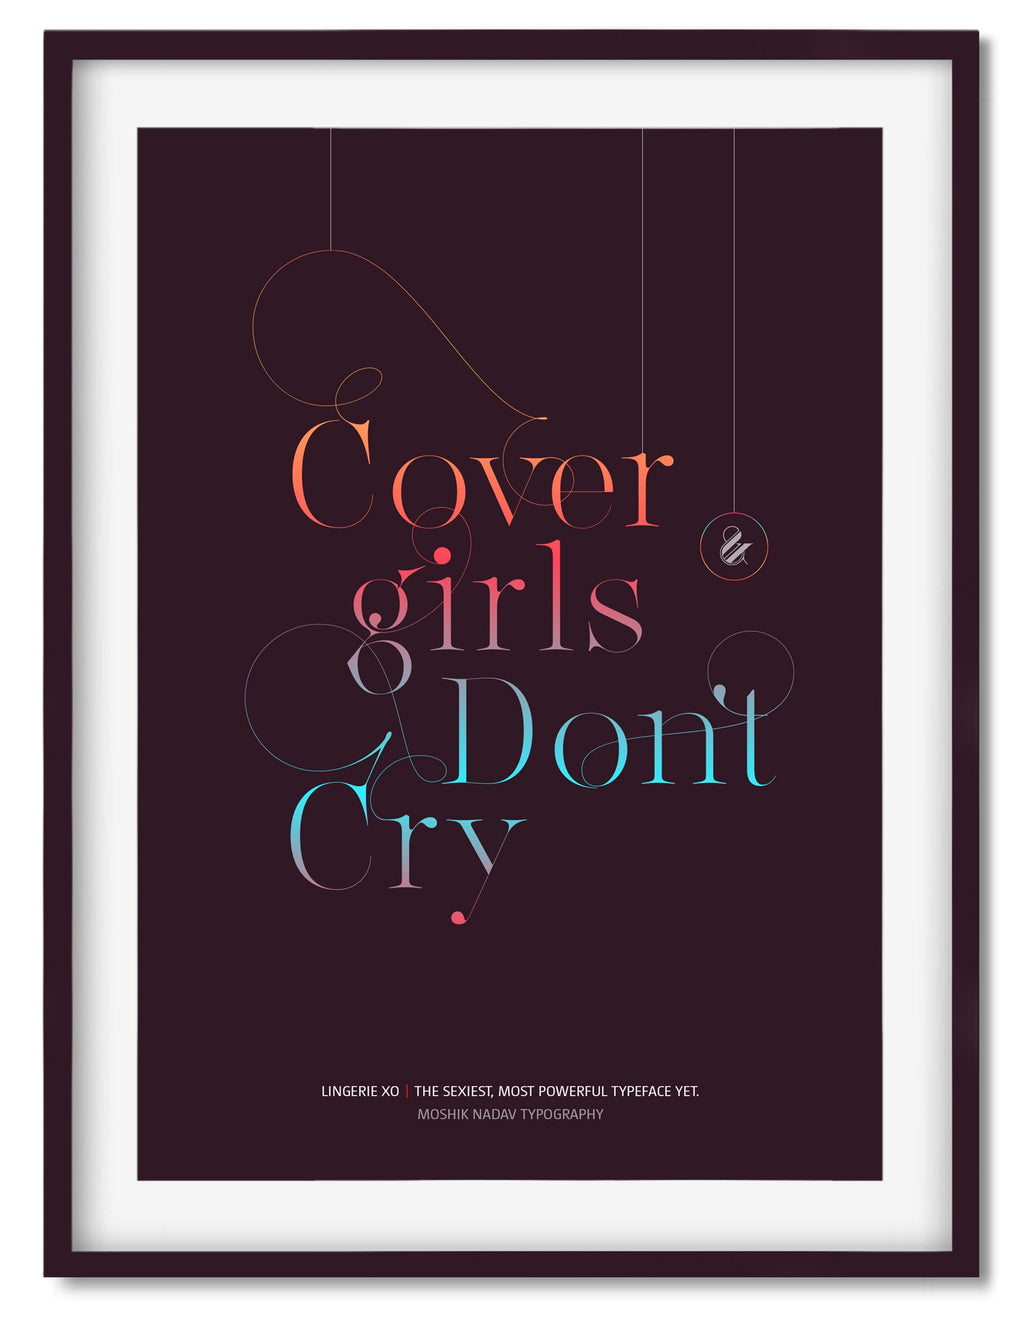 Cover girls don't cry poster designed by Moshik Nadav Fashion Typography